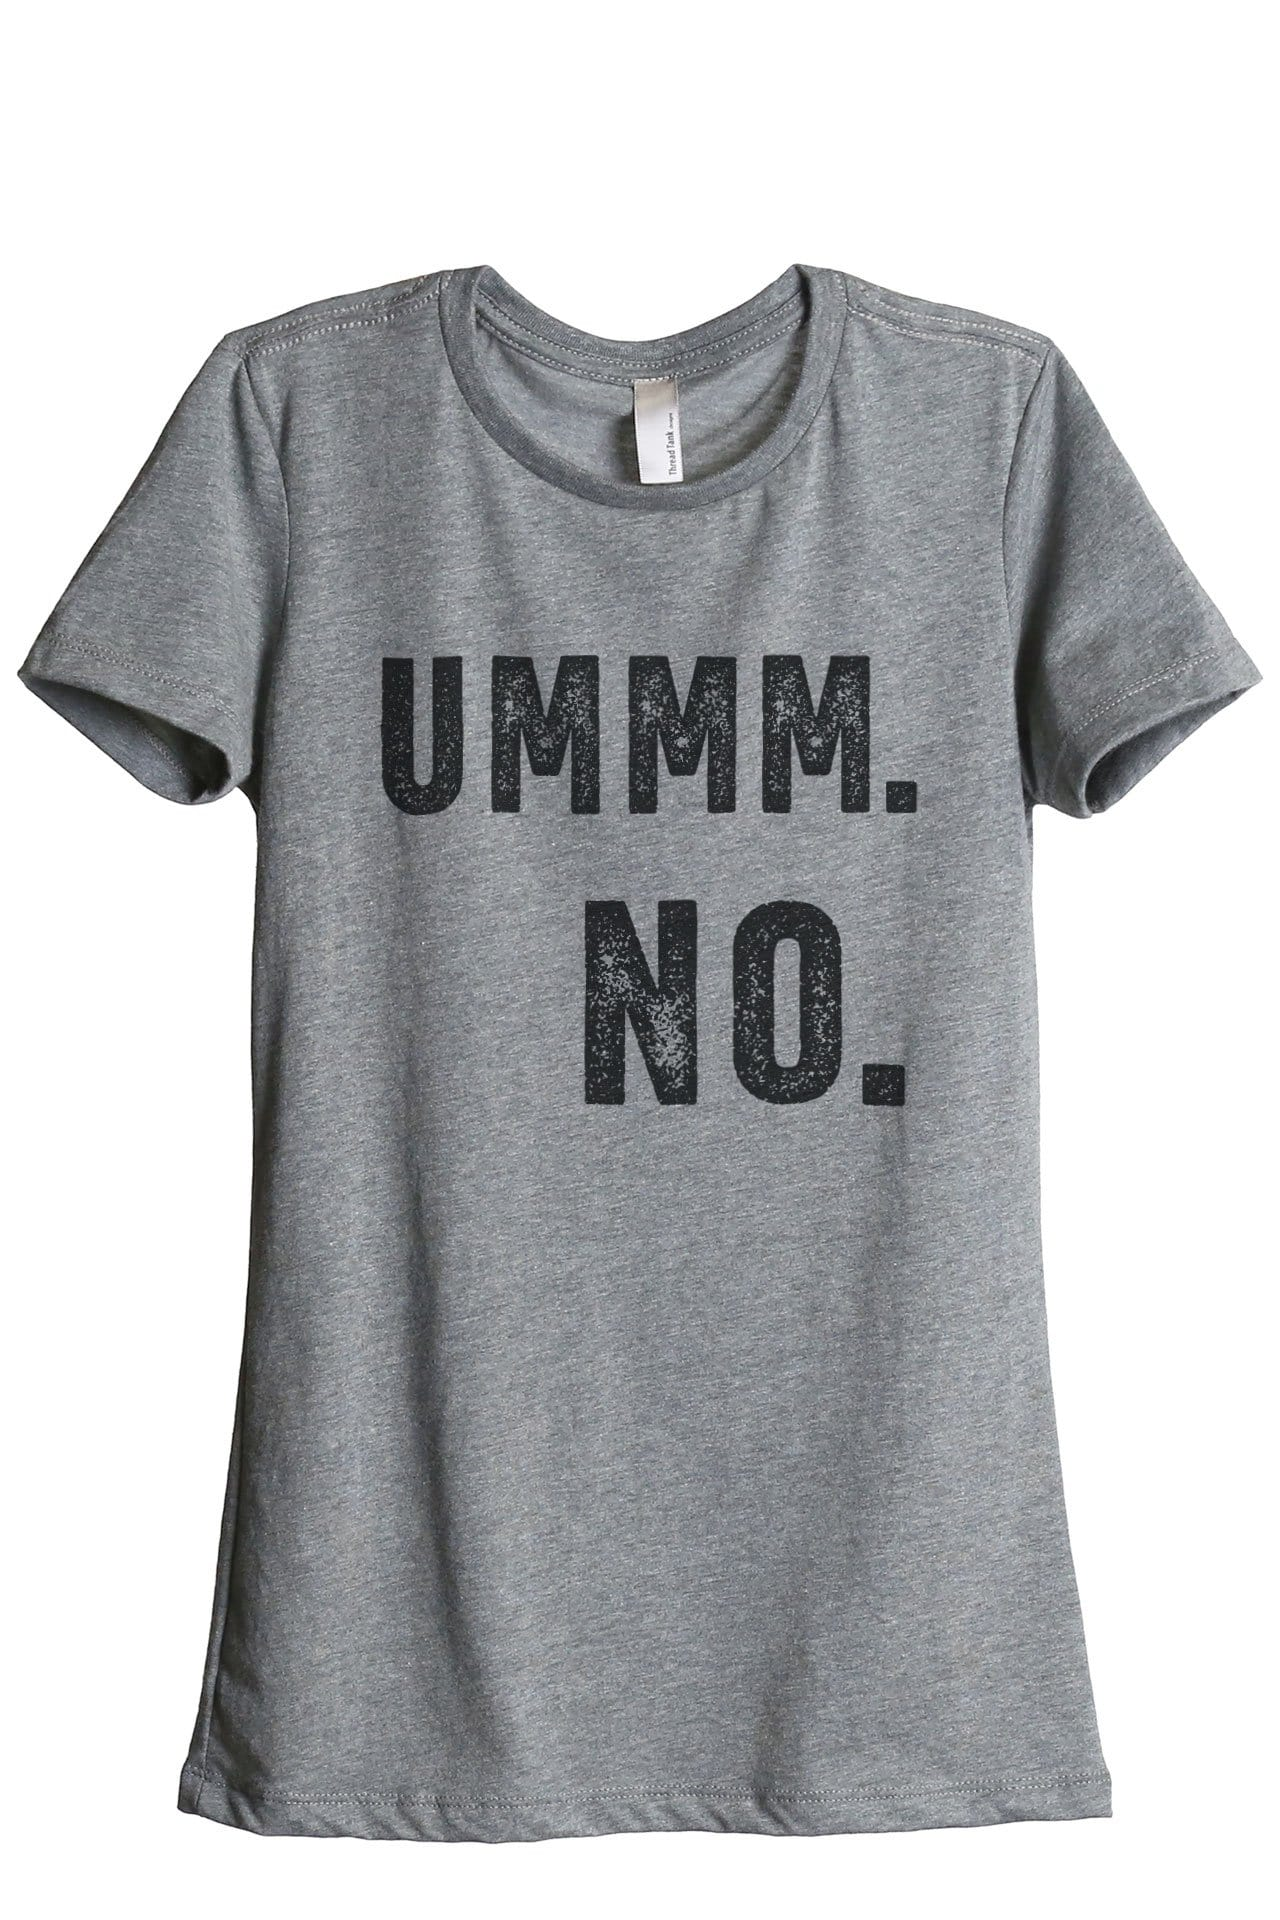 Ummm NO Women Heather Grey Relaxed Crew T-Shirt Tee Top